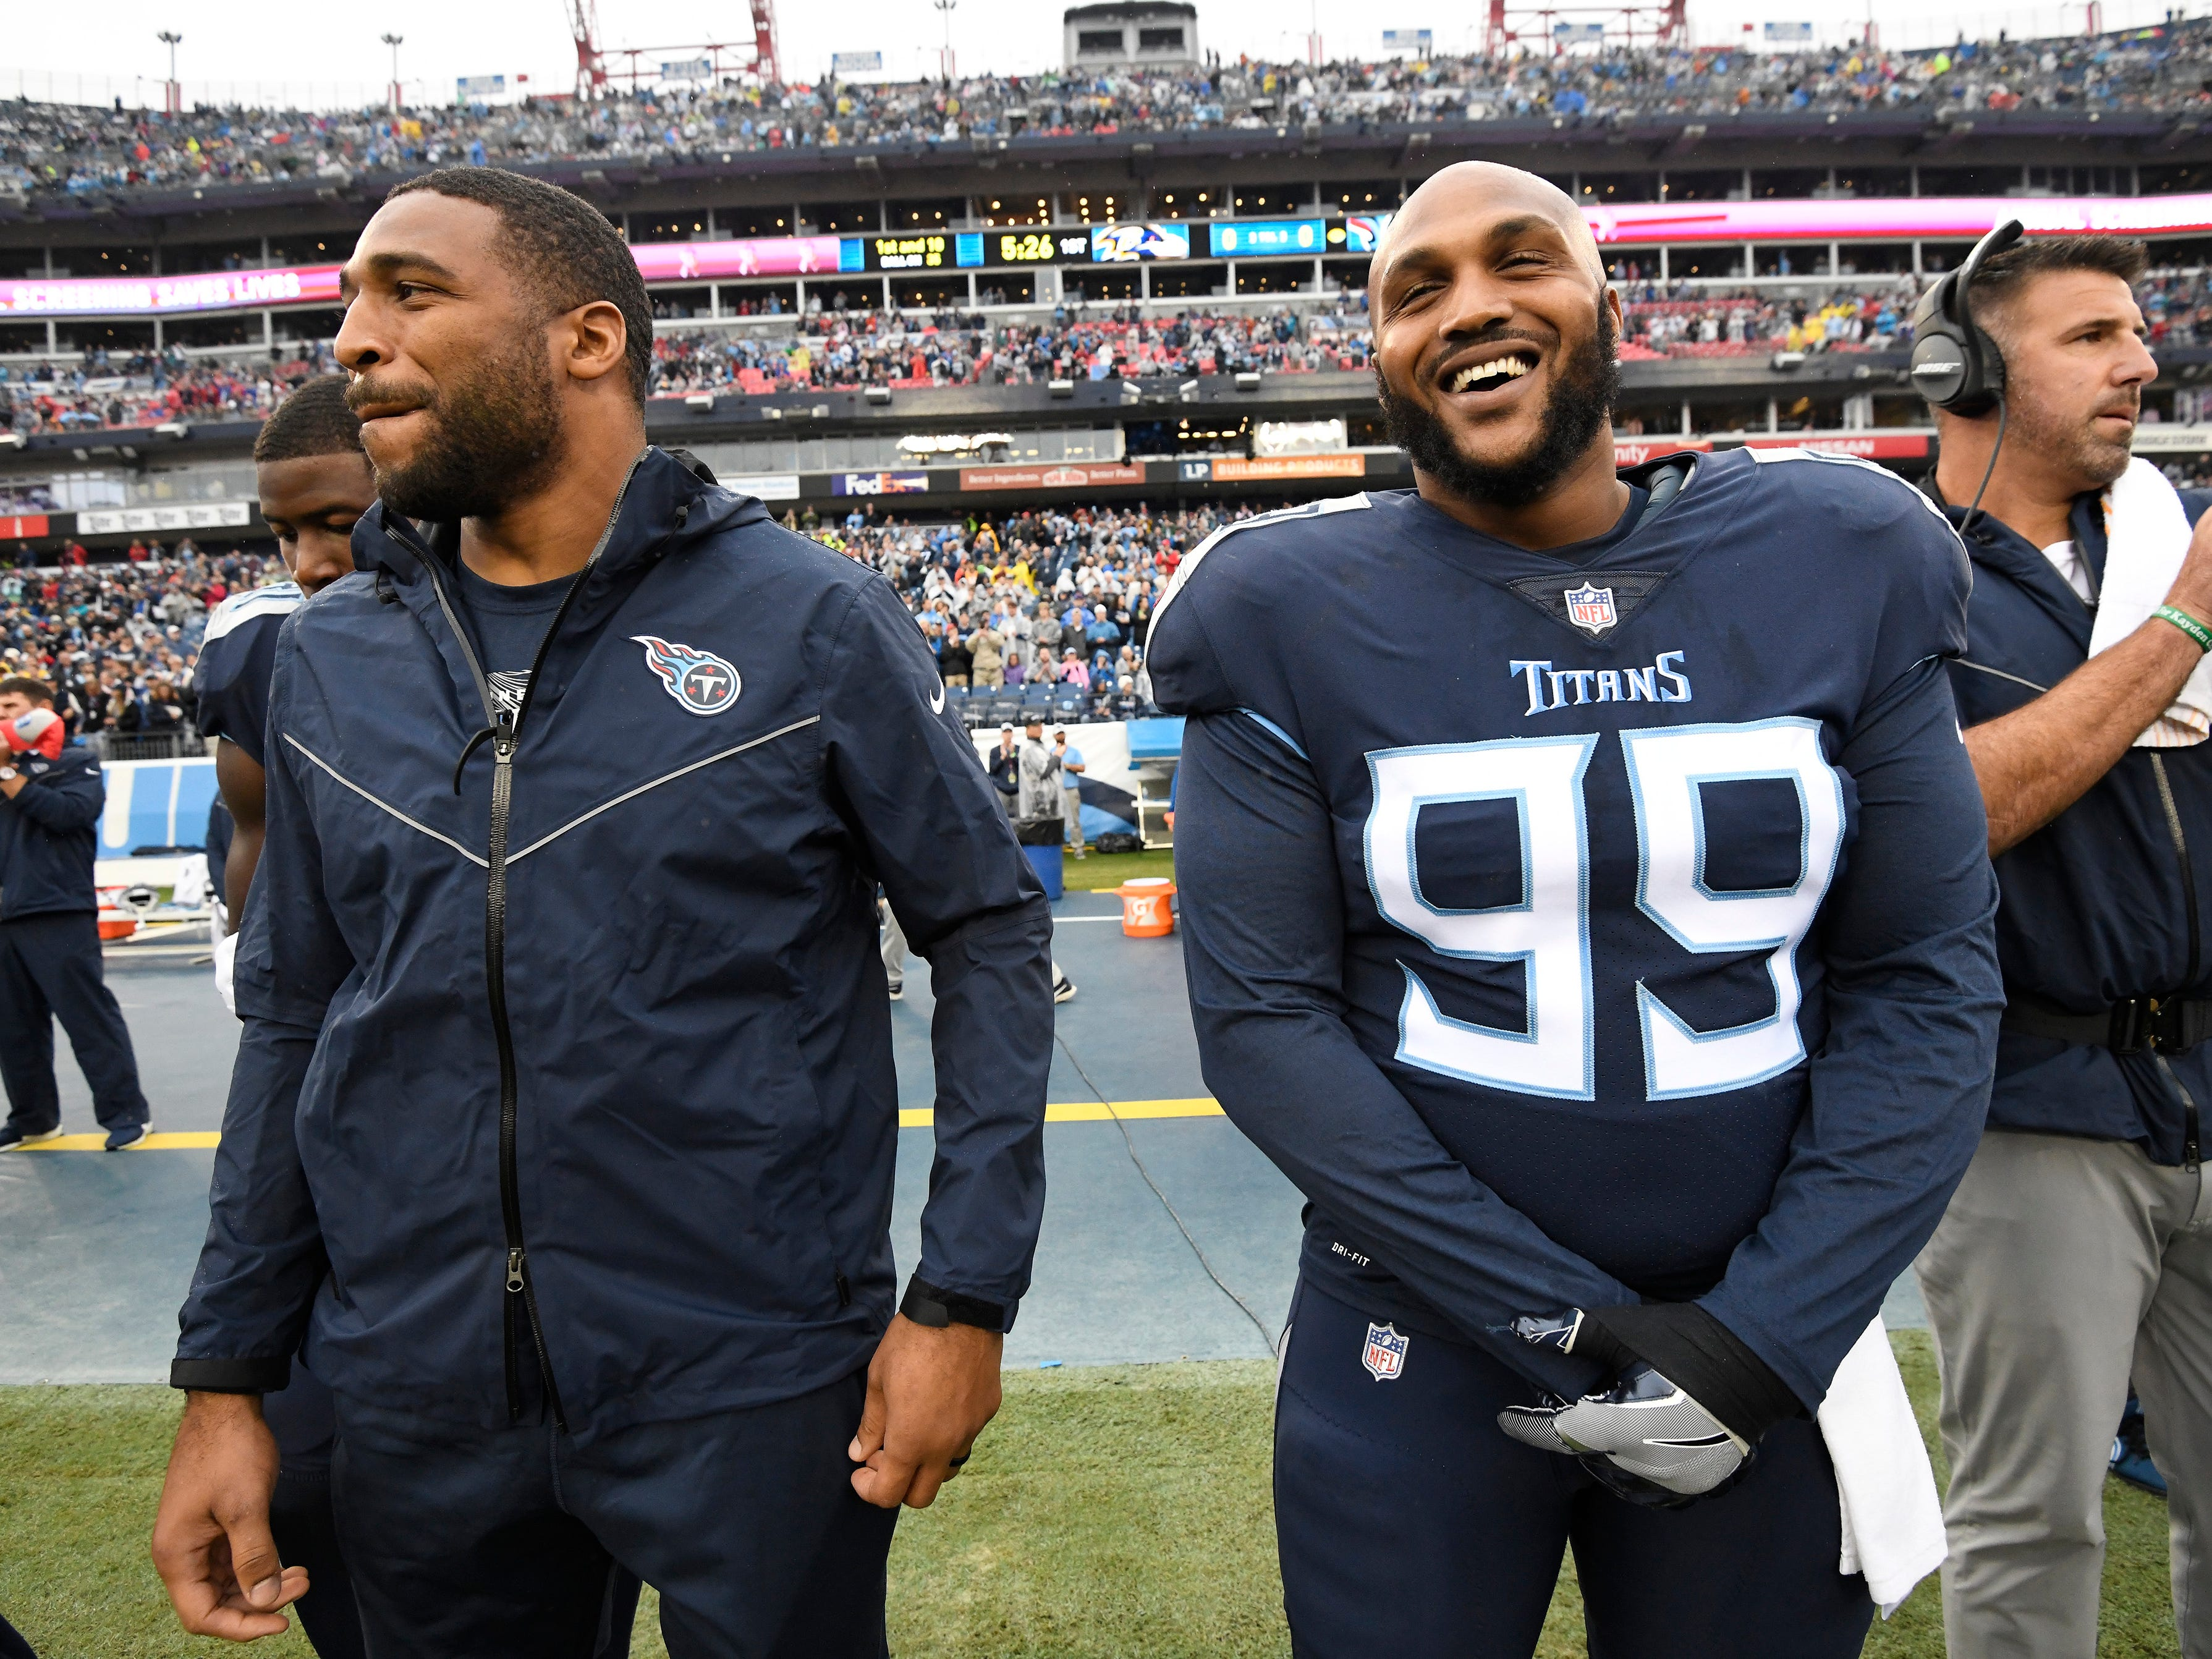 Injured Titans linebacker Wesley Woodyard (59) and defensive tackle Jurrell Casey (99) stand along the sidelines before the game at Nissan Stadium Sunday, Oct. 14, 2018, in Nashville, Tenn.